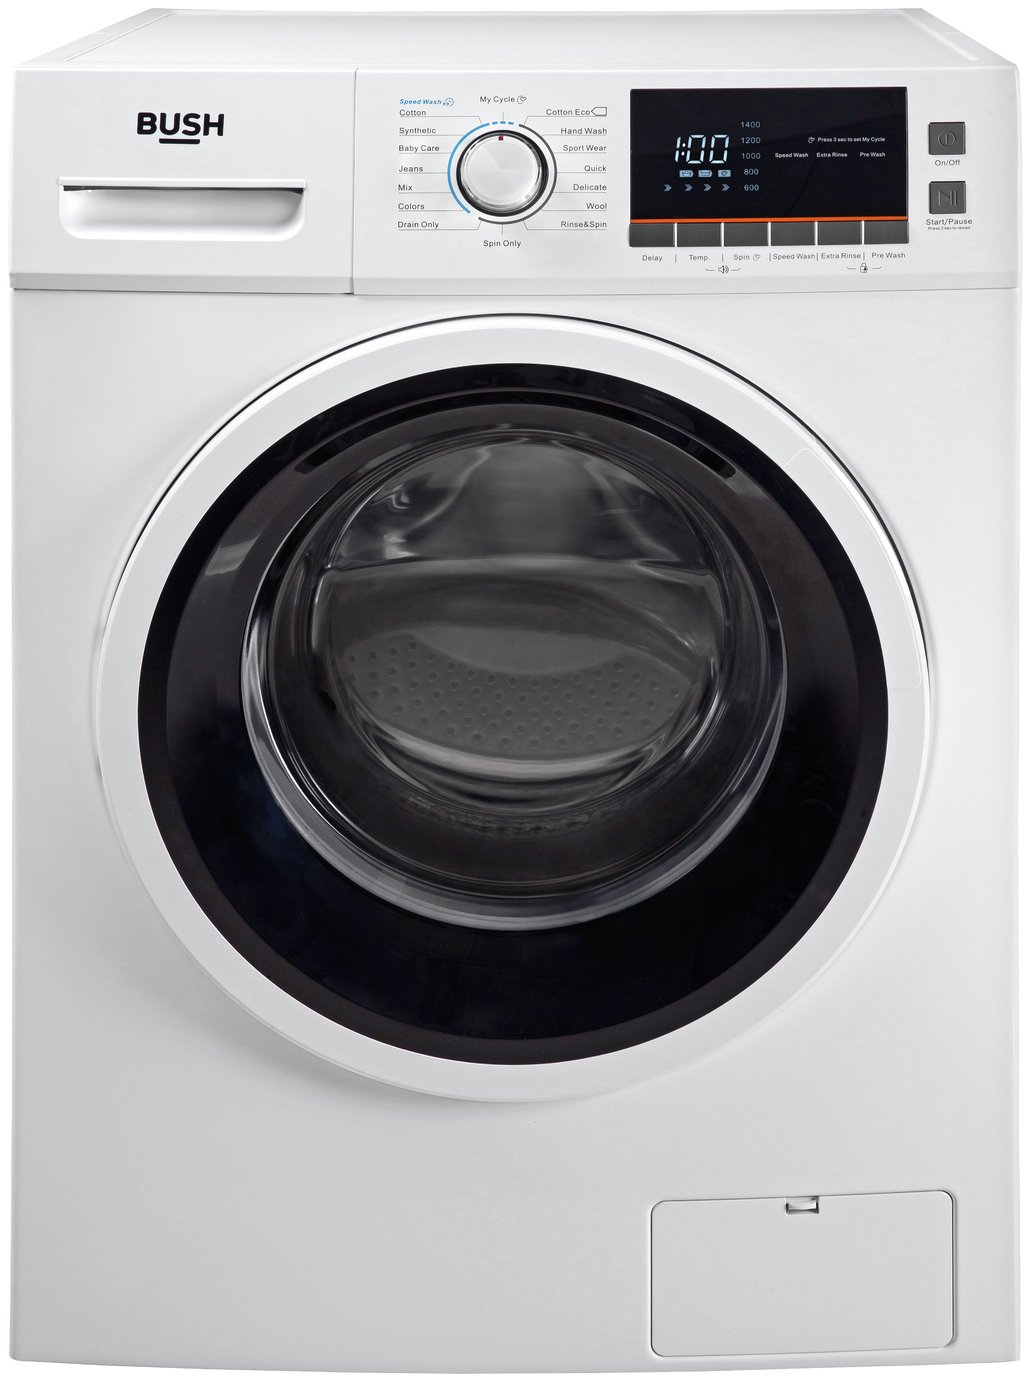 Bush WMNBX914W 9KG 1400 Spin Washing Machine - White Best Price, Cheapest Prices